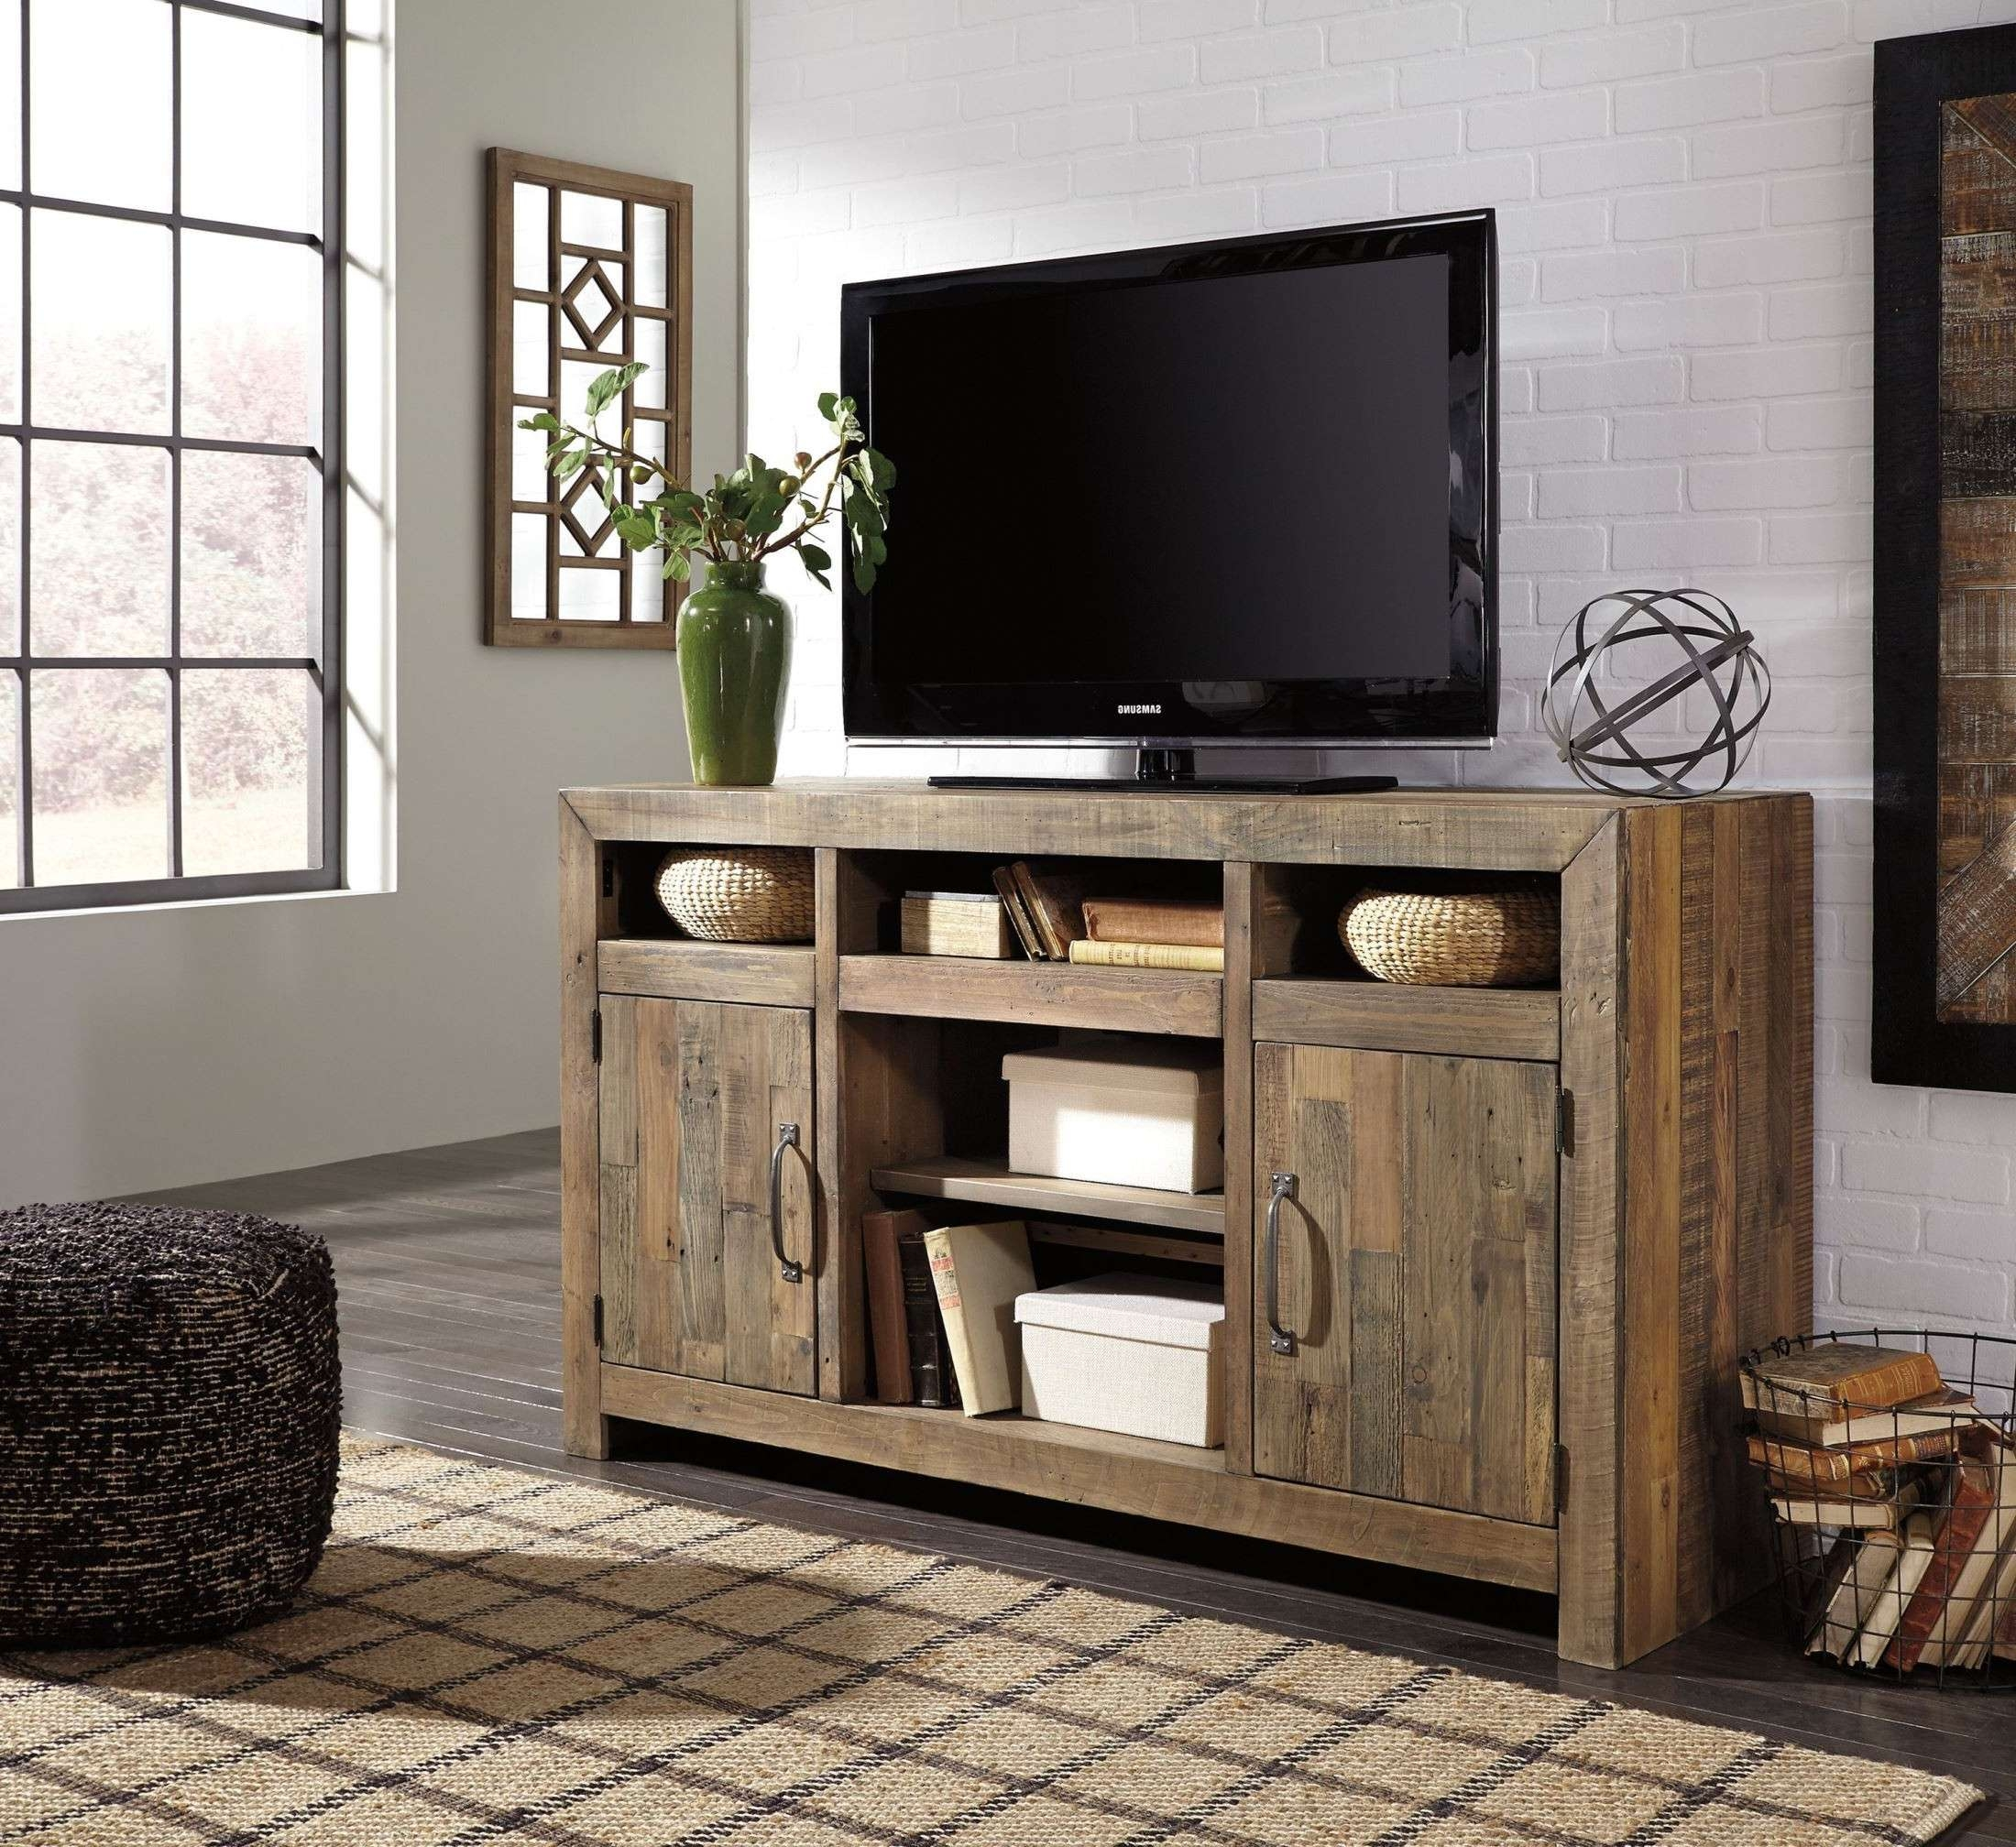 Sommerford Brown Tv Stand From Ashley | Coleman Furniture For Brown Tv Stands (View 15 of 20)